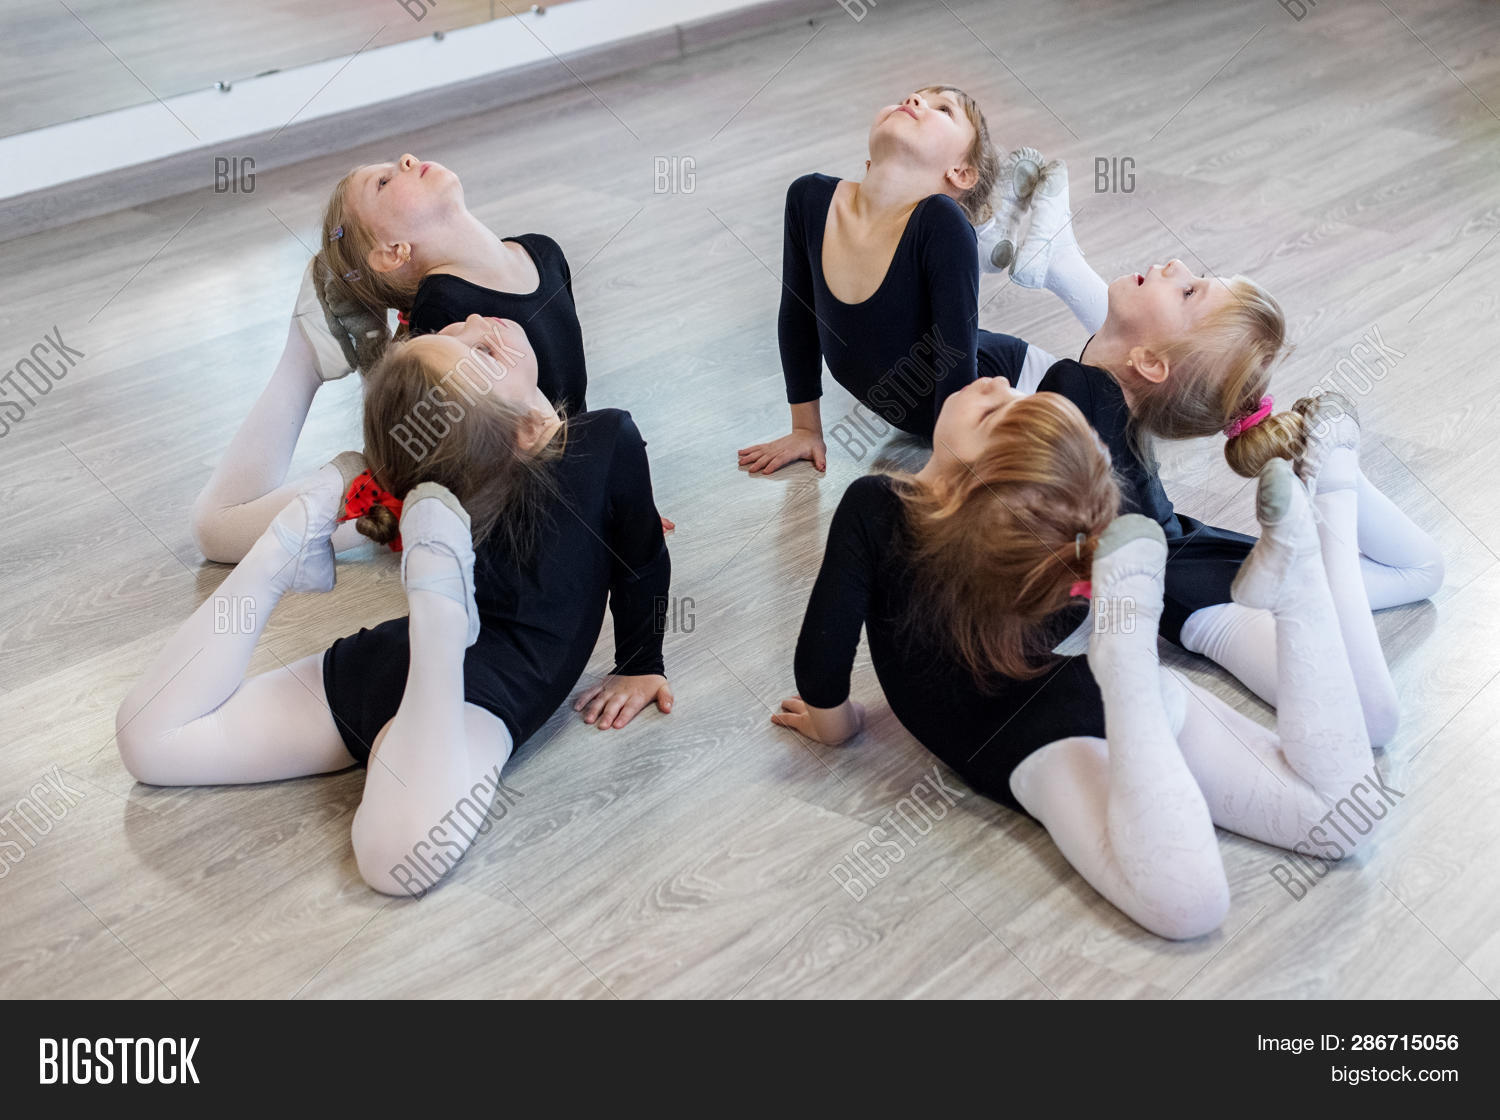 Little girls do gymnastics in a dance class. The concept of sport, education, childhood, hobbies and dance